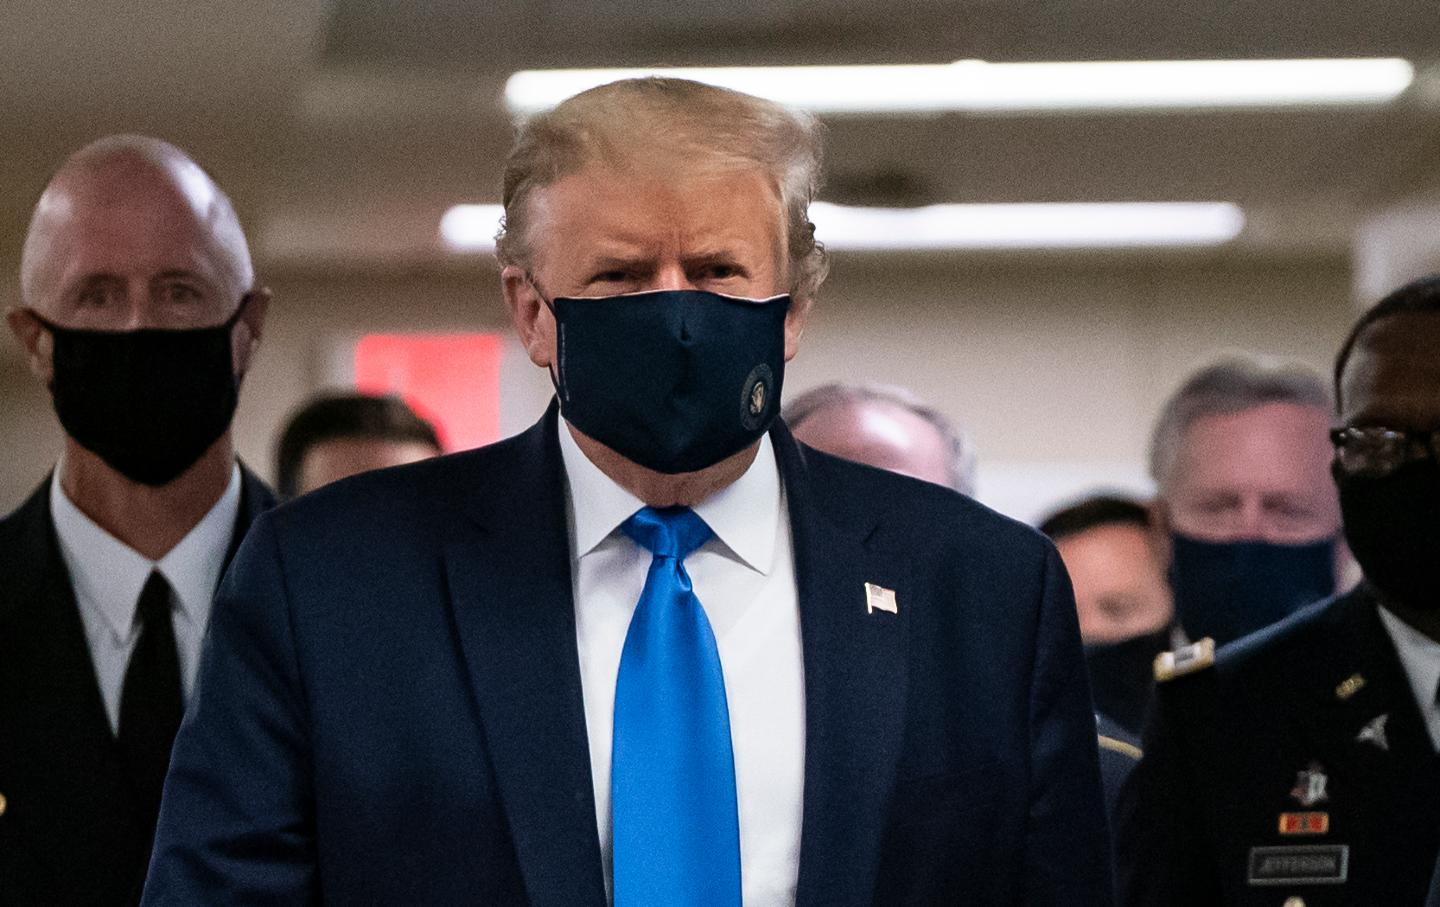 Trump wearing a mask